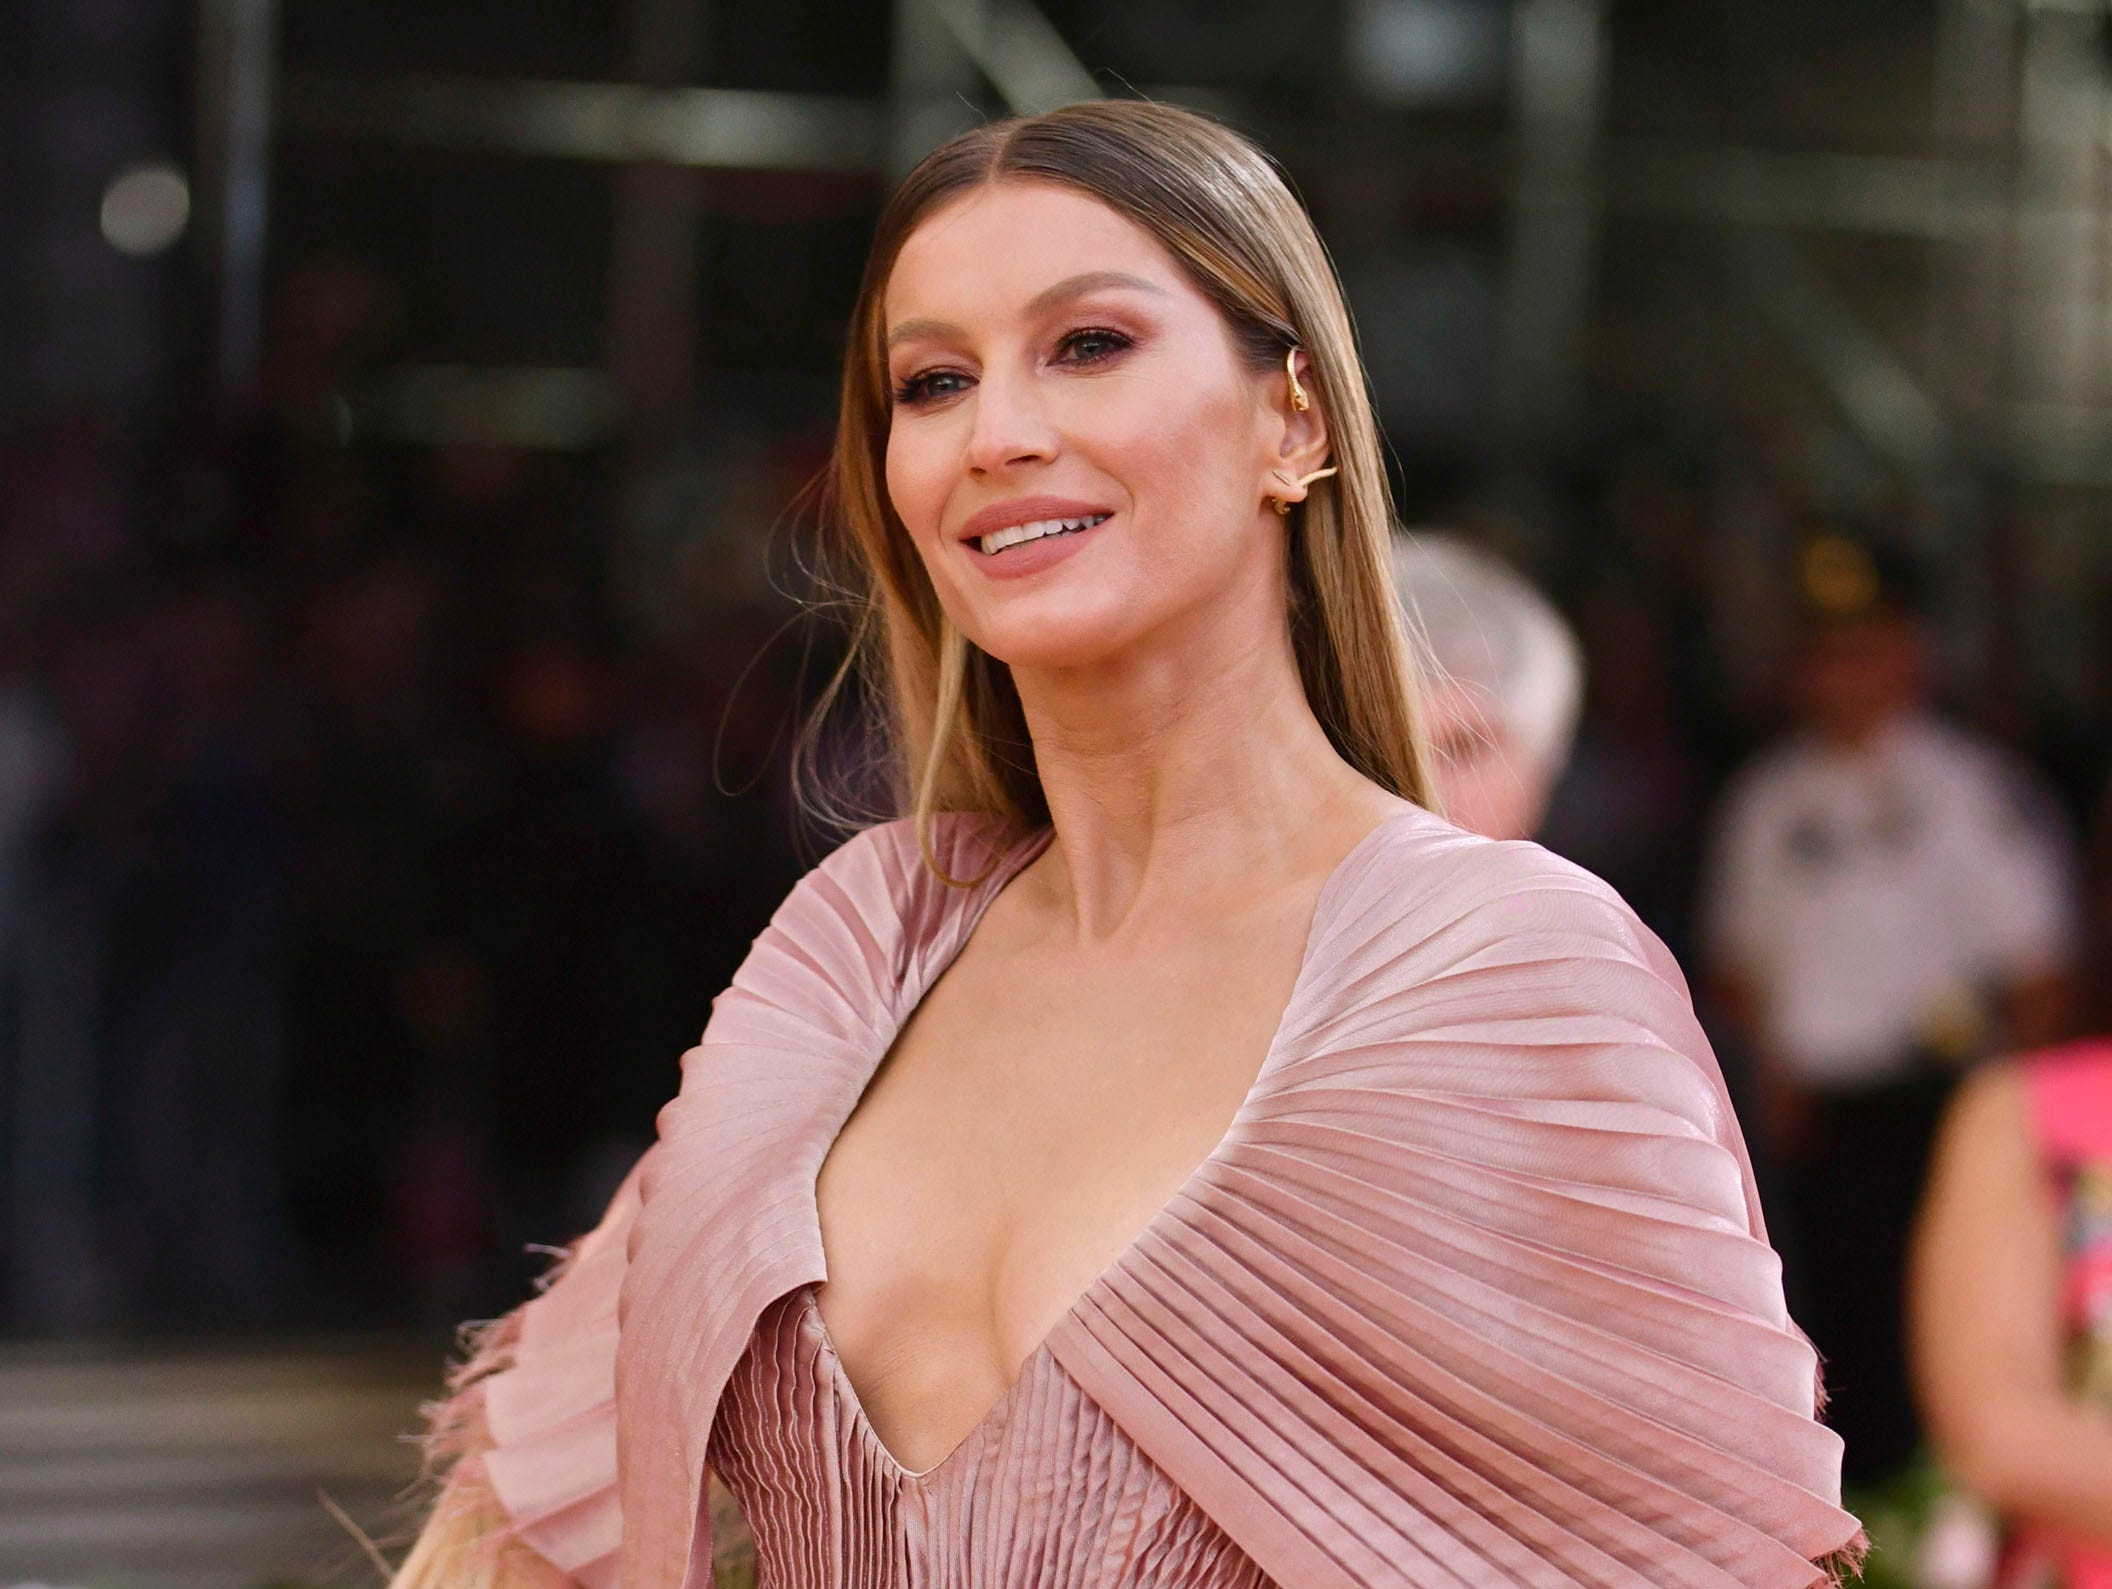 """Gisele Bundchen attends The Metropolitan Museum of Art's Costume Institute benefit gala celebrating the opening of the """"Camp: Notes on Fashion"""" exhibition on Monday, May 6, 2019, in New York. (Photo by Charles Sykes/Invision/AP) ORG XMIT: NYJW357"""